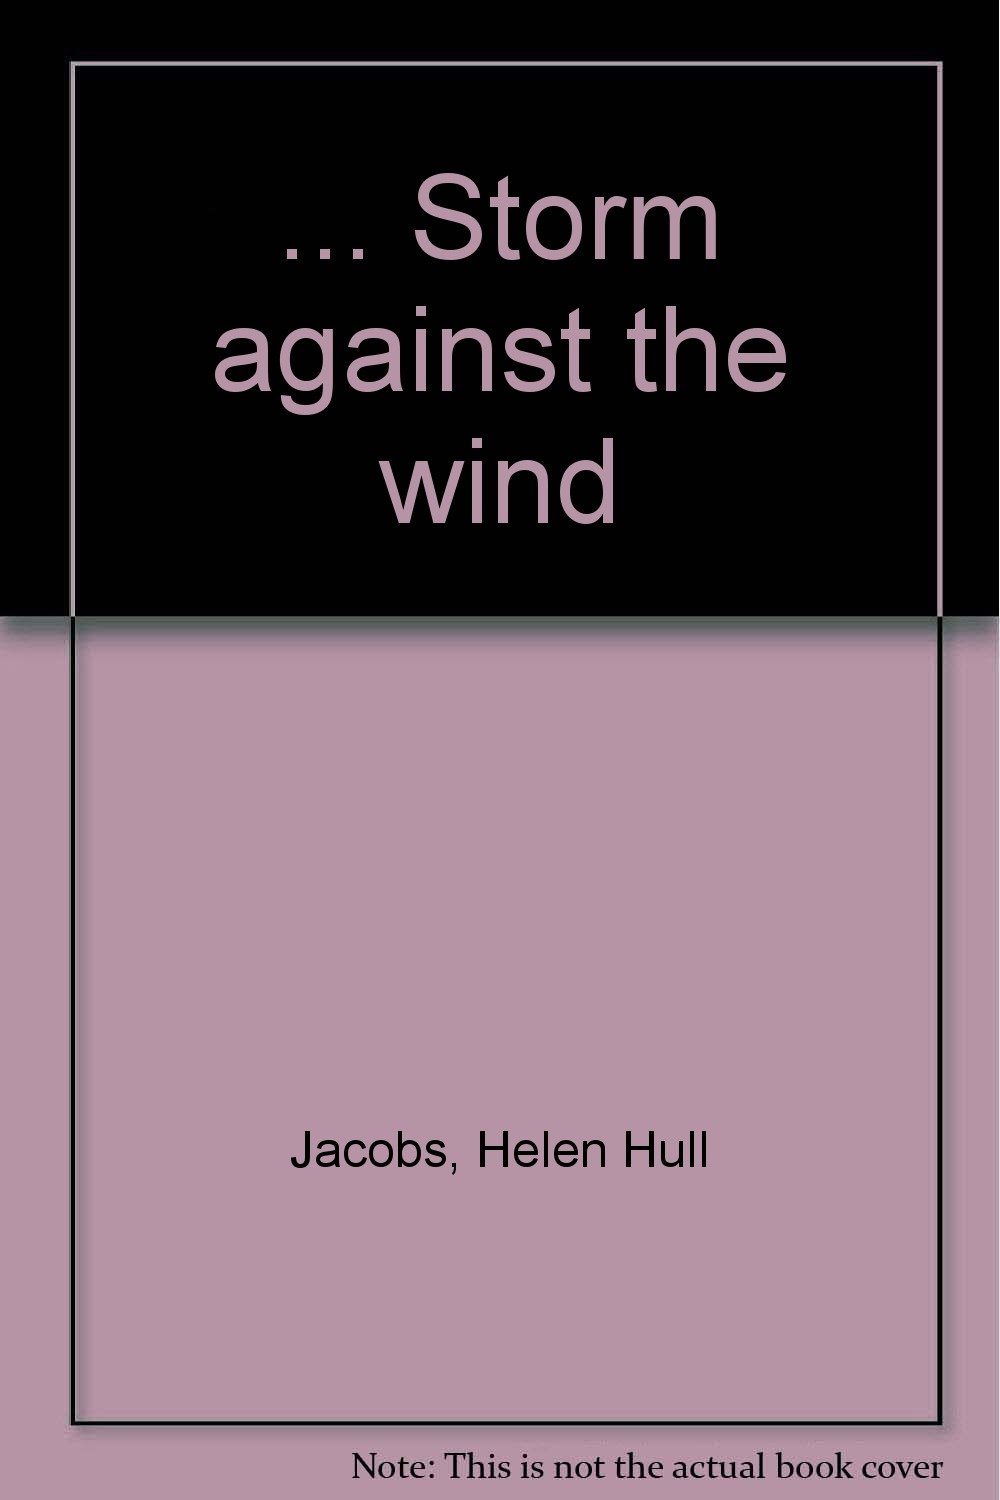 Storm against the wind Helen Hull Jacobs Amazon Books